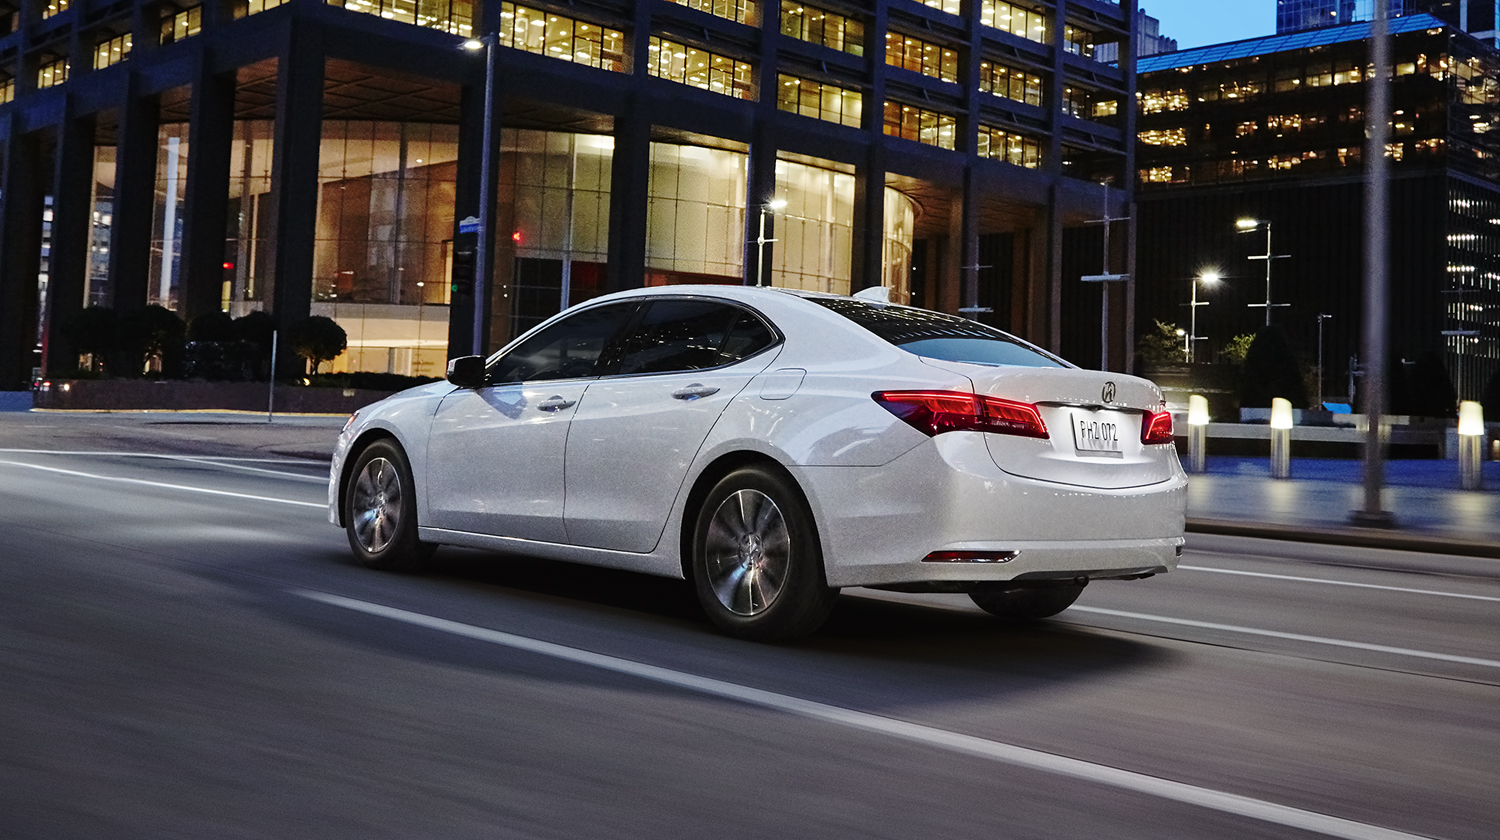 2017 Acura TLX Exterior White Night